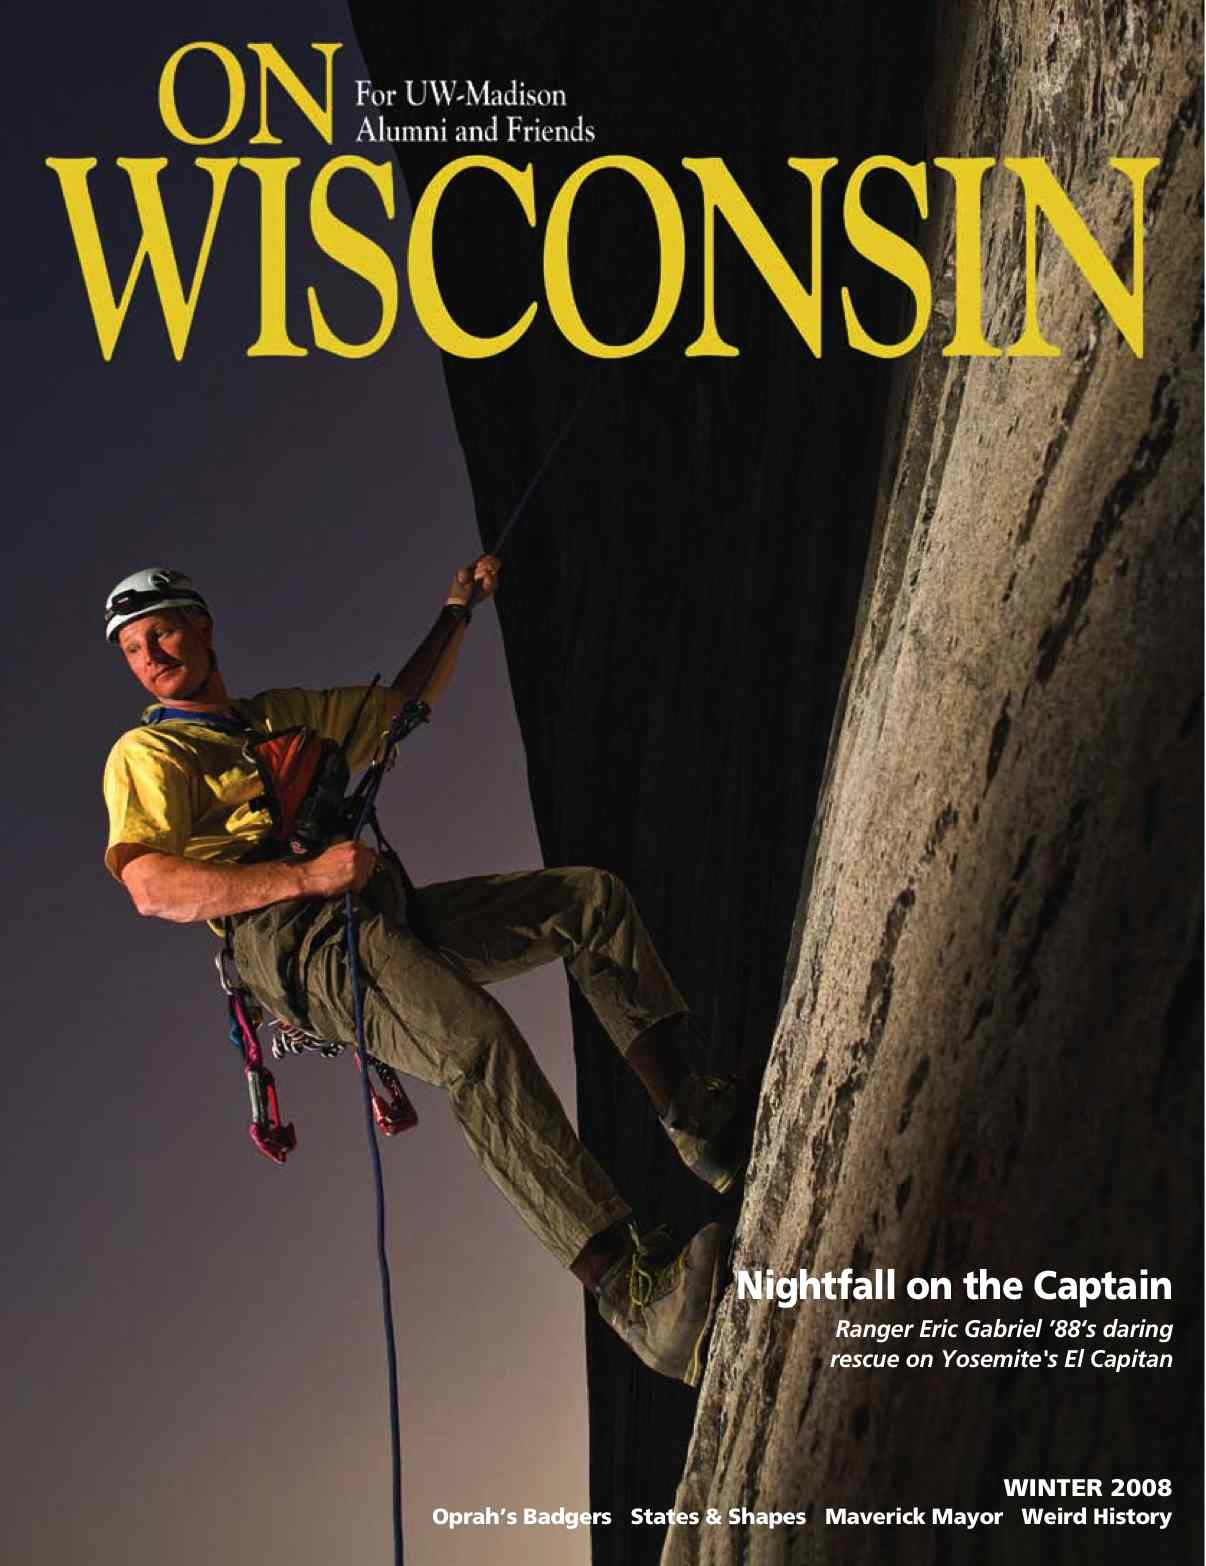 Cover from the Winter 2008 issue